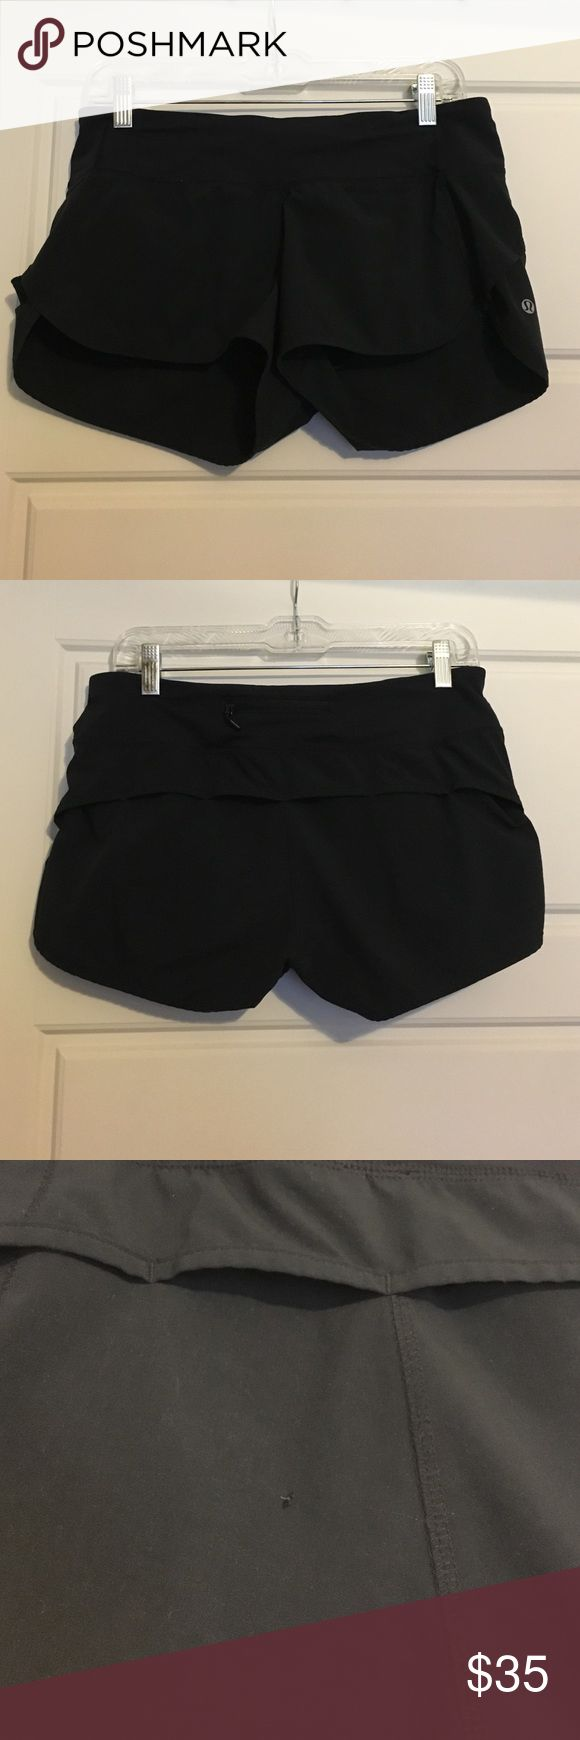 "LuluLemon Speed Short 2.5"" Black Sz 6 2.5"" inseam. Lulu tag has been removed but size located in back zipper pocket. Small pull in fabric on back (see picture). OPEN TO OFFERS :) lululemon athletica Shorts"